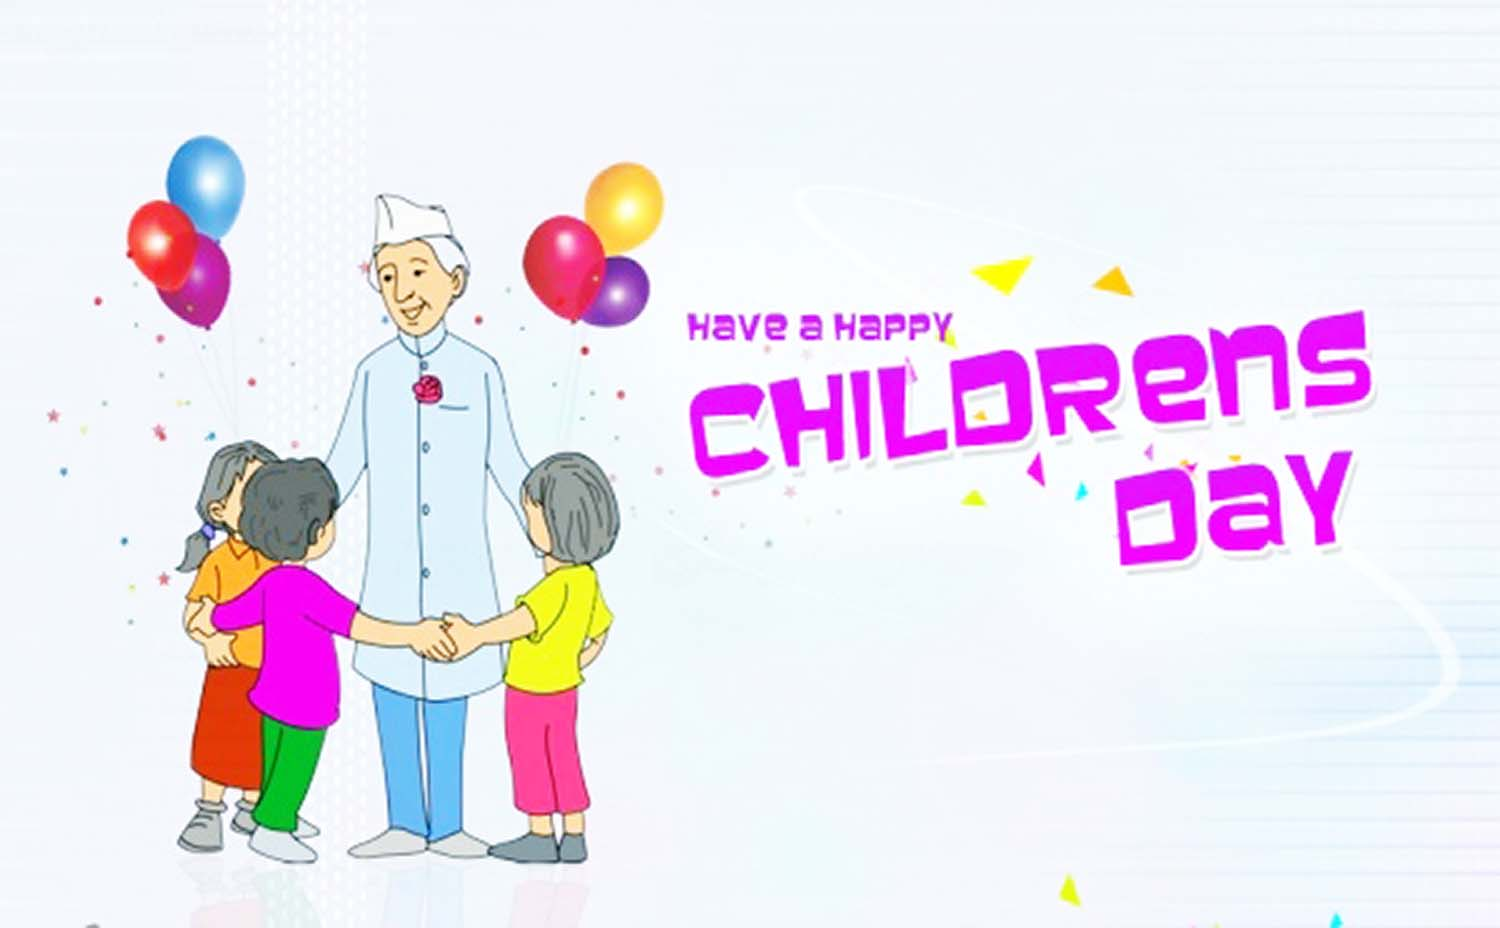 Happy Childrens Day Images Hd Wallpapers Greetings Photos For